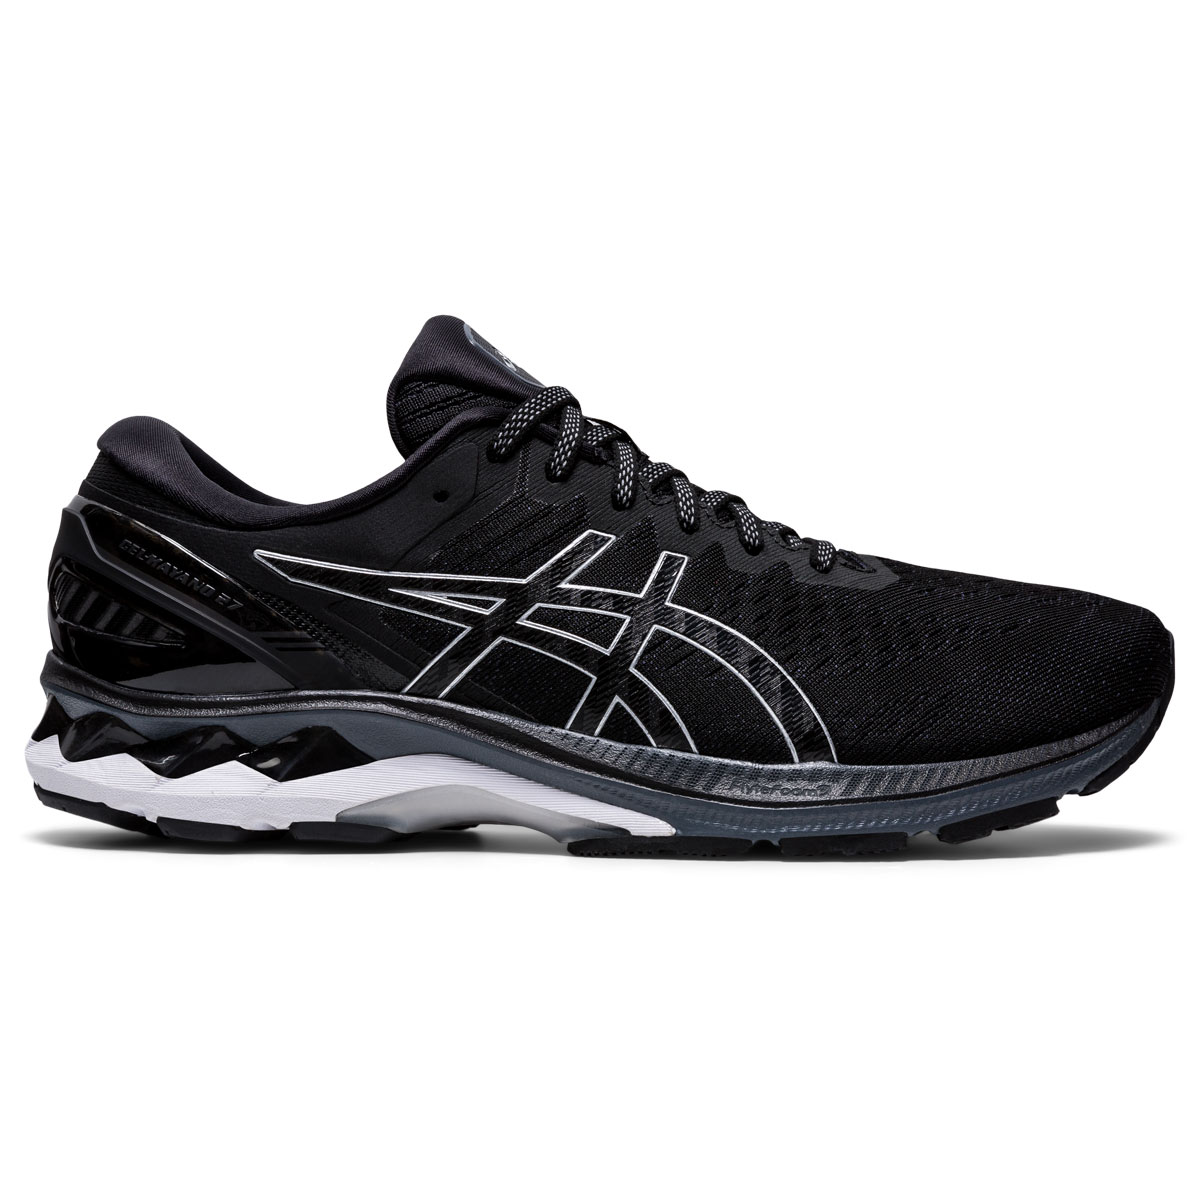 Men's Asics GEL-Kayano 27 Running Shoe, , large, image 1